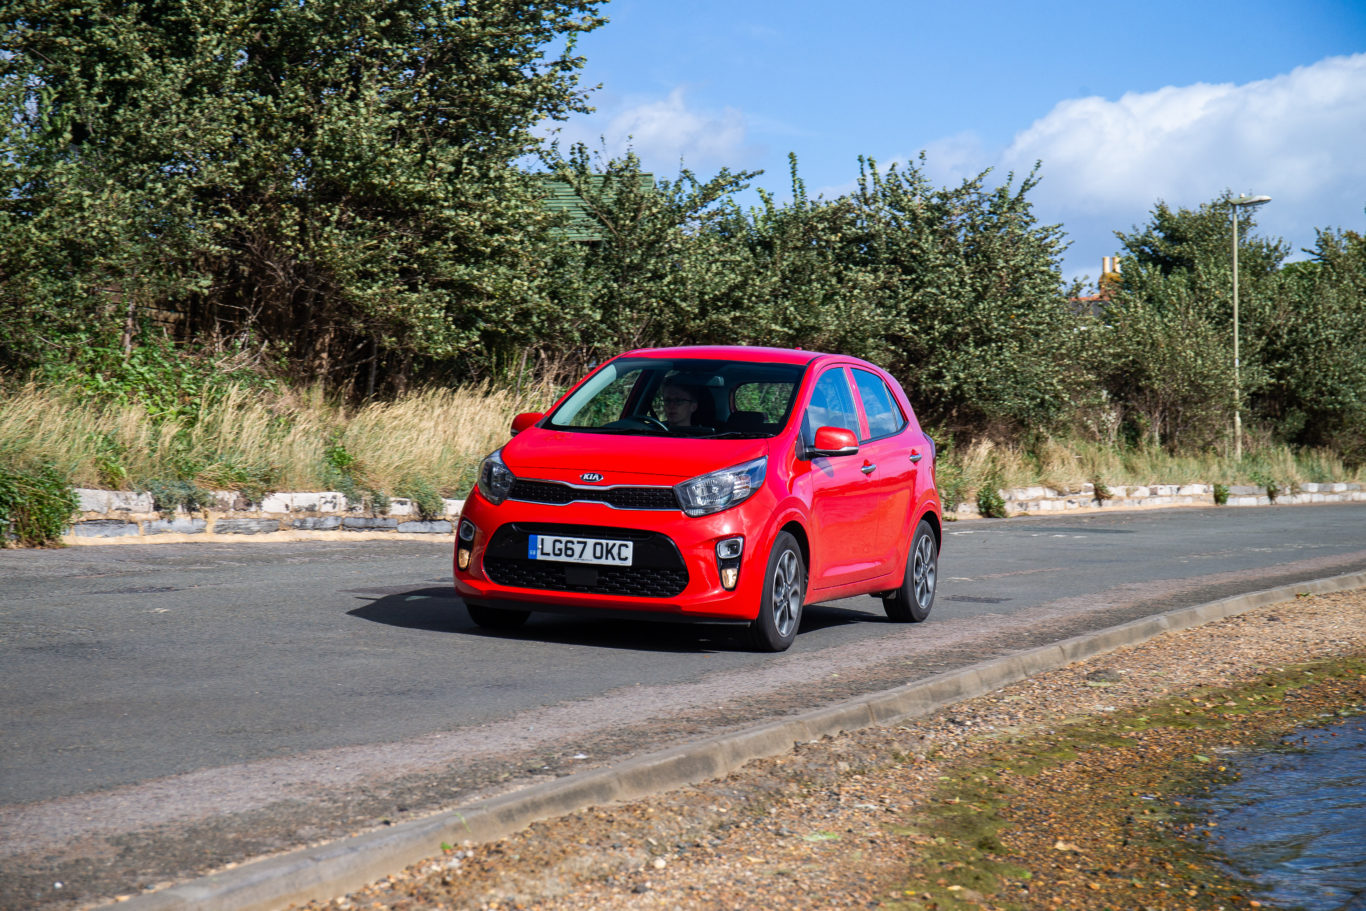 The Picanto is an ideal choice for urban drivers